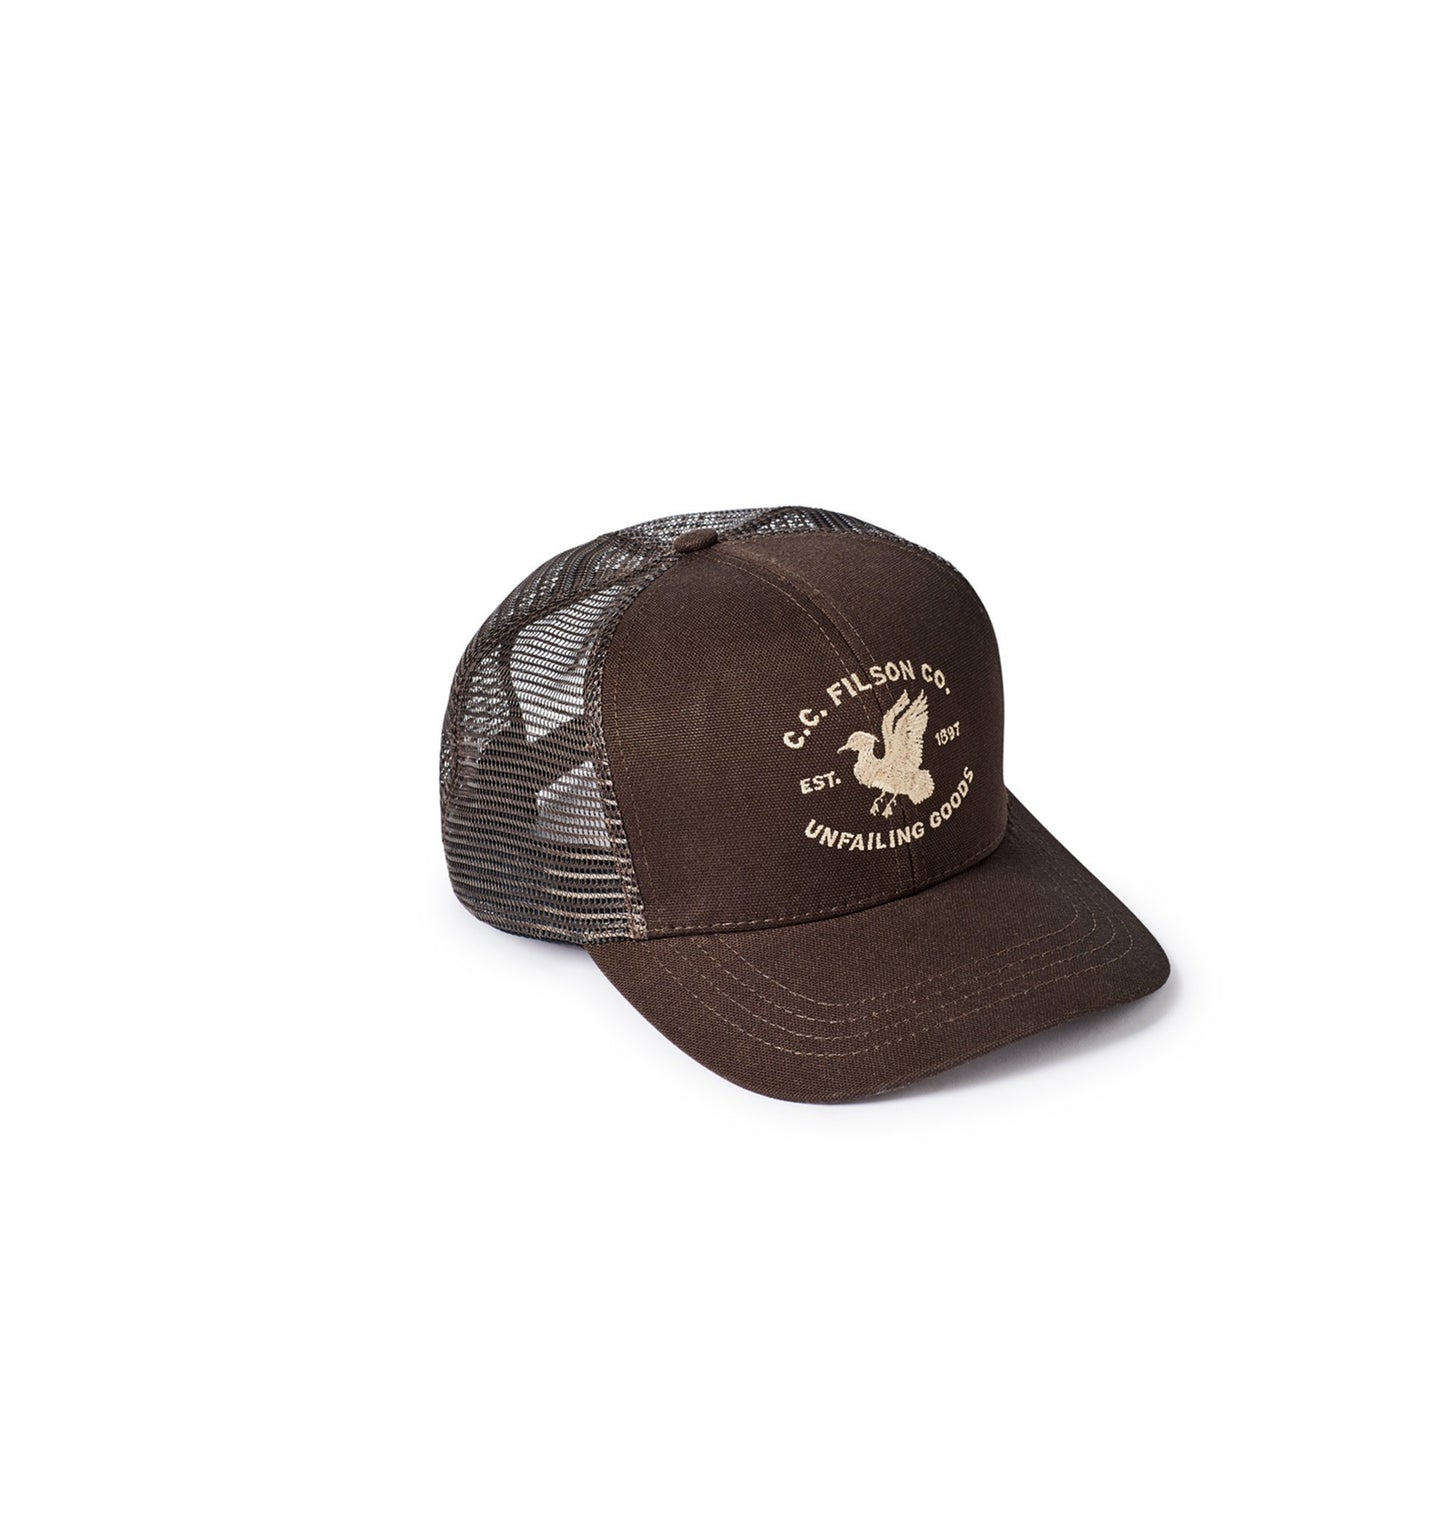 Filson ACCESSORIES - HATS - TRUCKER Filson, Highway 2 Logger Mesh Cap, Brown